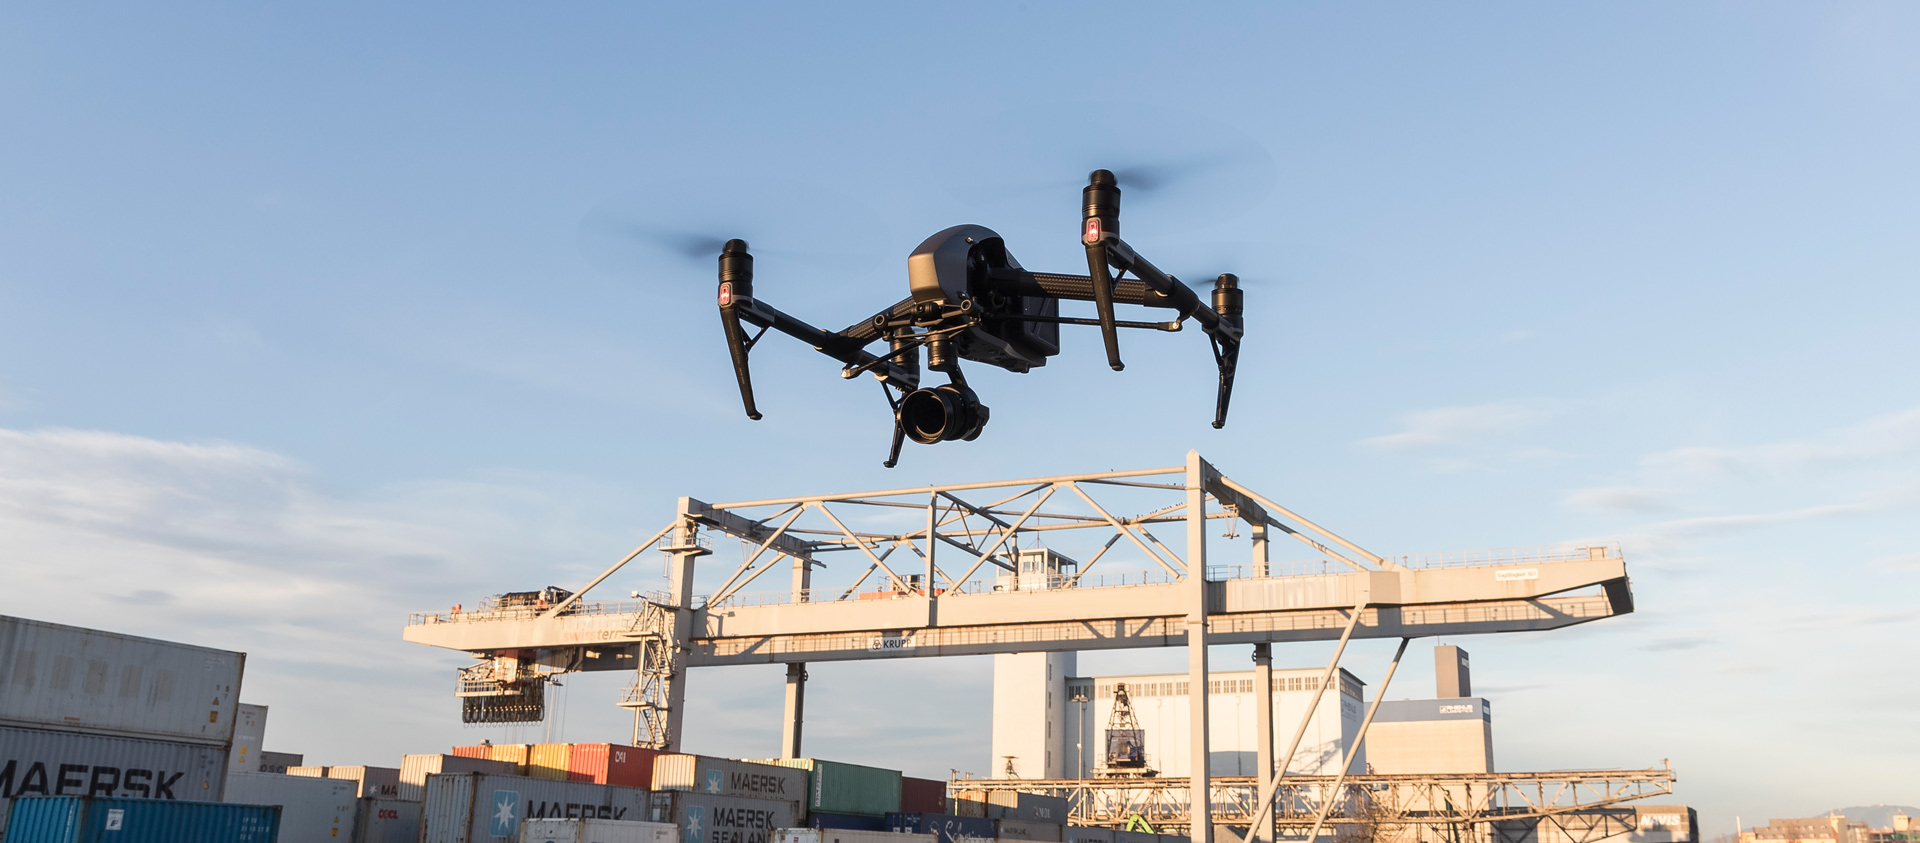 DJI-inspire-2-review-flying